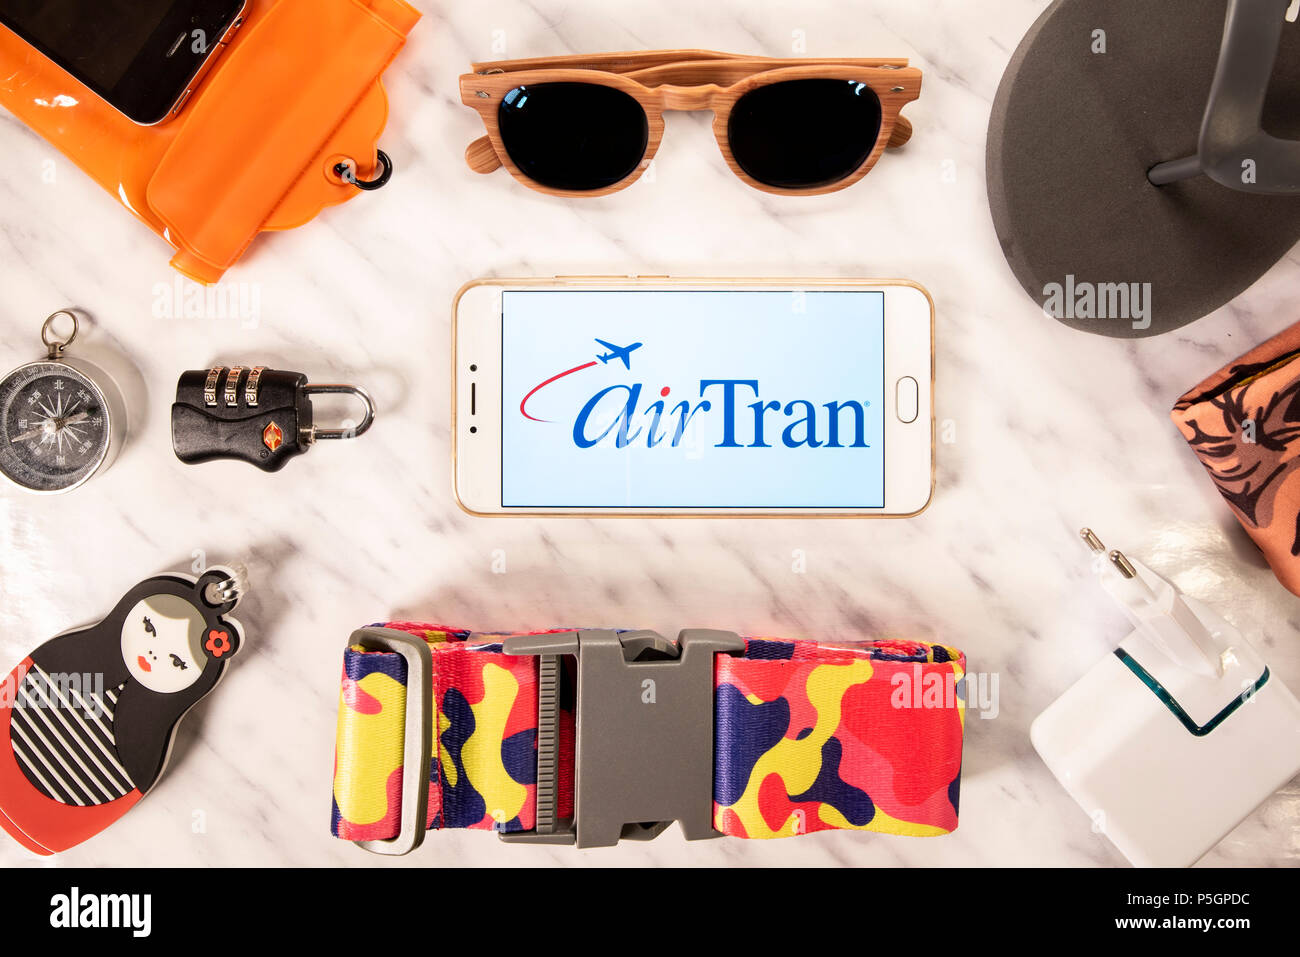 American low-cost AirTran Airways airline logo displayed on a smartphone screen next to travel accessories. Stock Photo